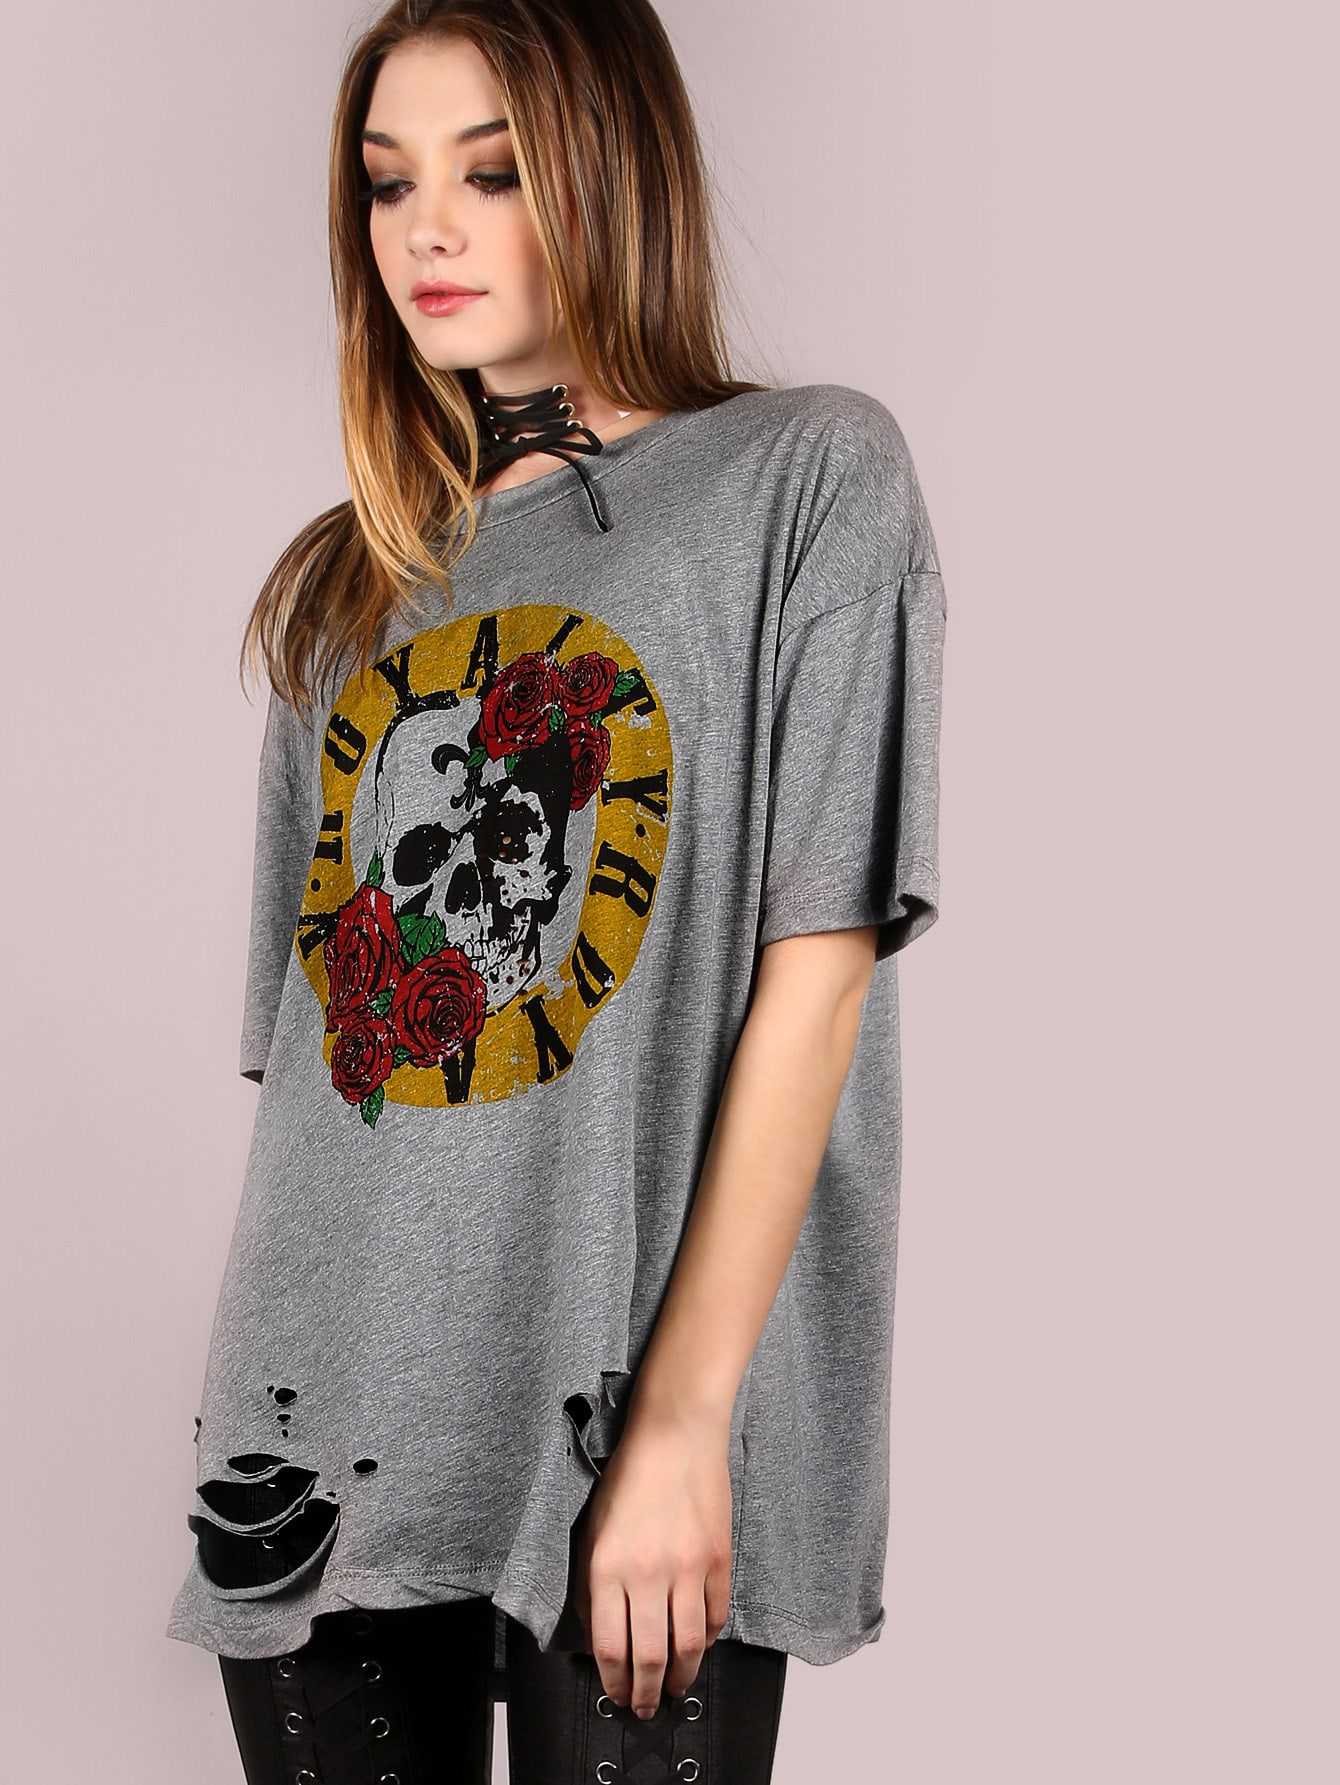 Oversized Short Sleeve Royalty Graphic Tee on royalty